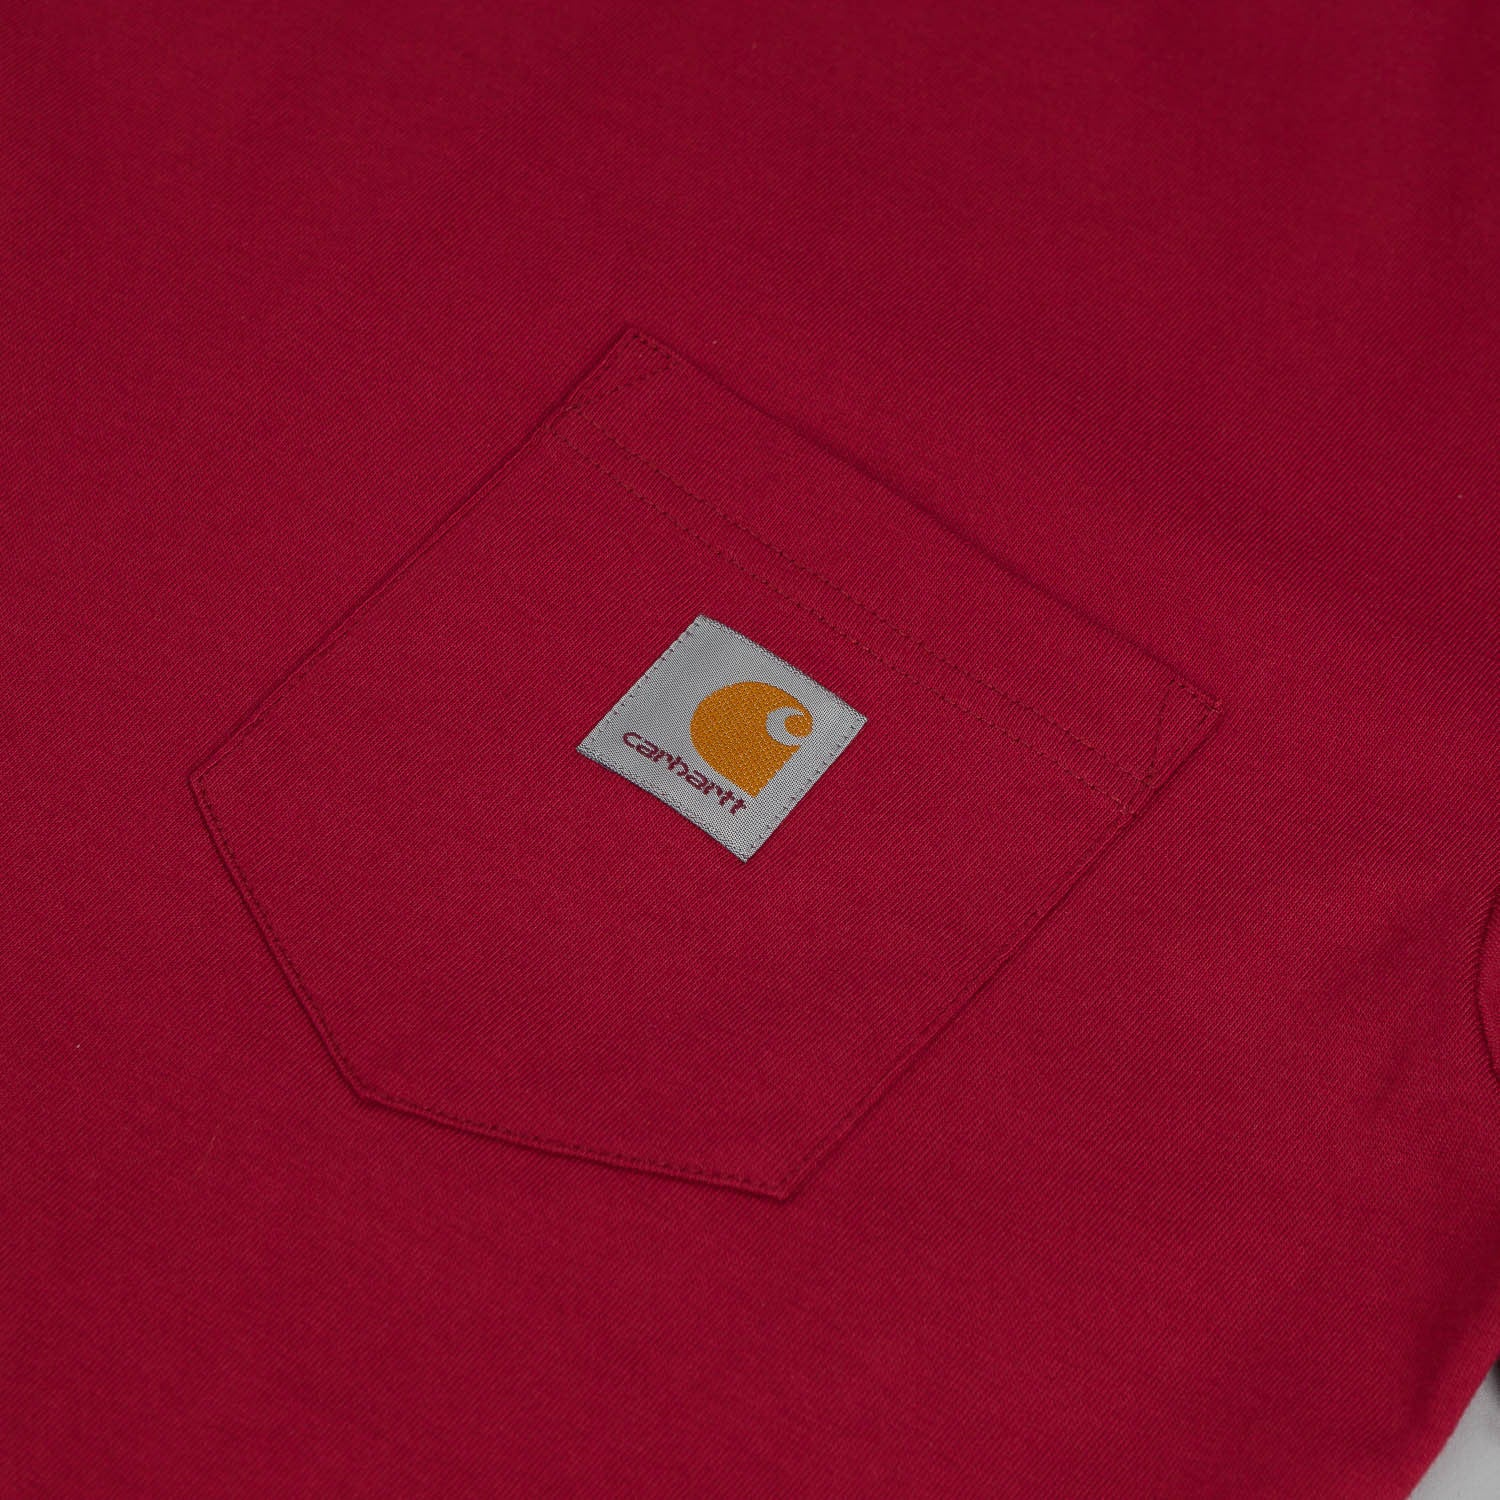 Carhartt Pocket T-Shirt - Alabama